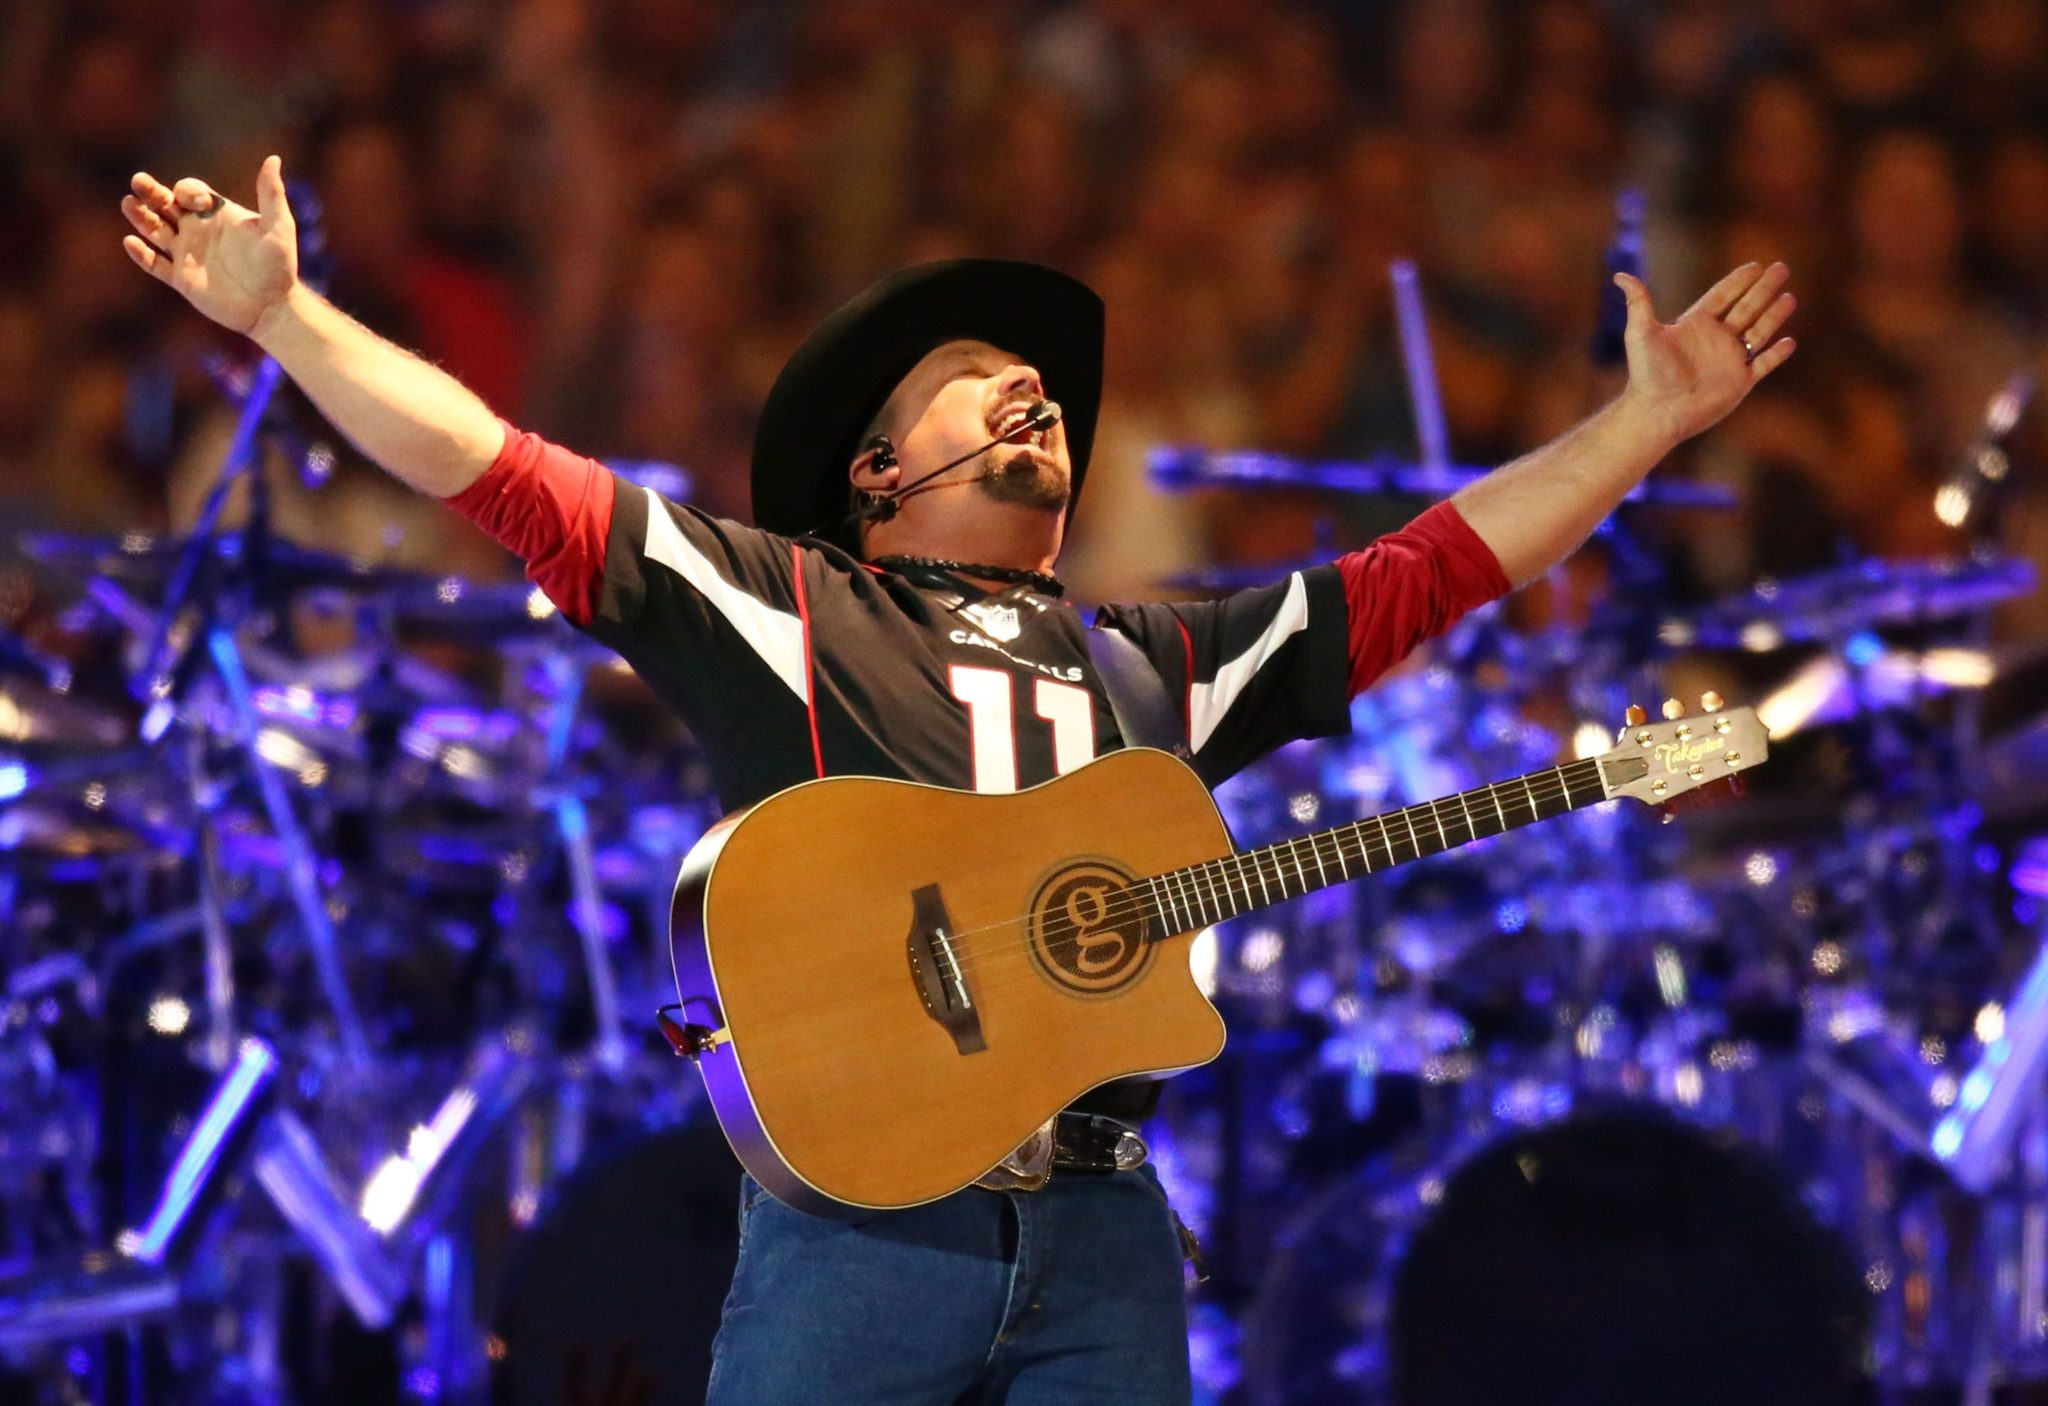 Country music legend Garth Brooks performs to over 75,000 fans, the largest indoor concert crowd ever in Arizona at State Farm Stadium